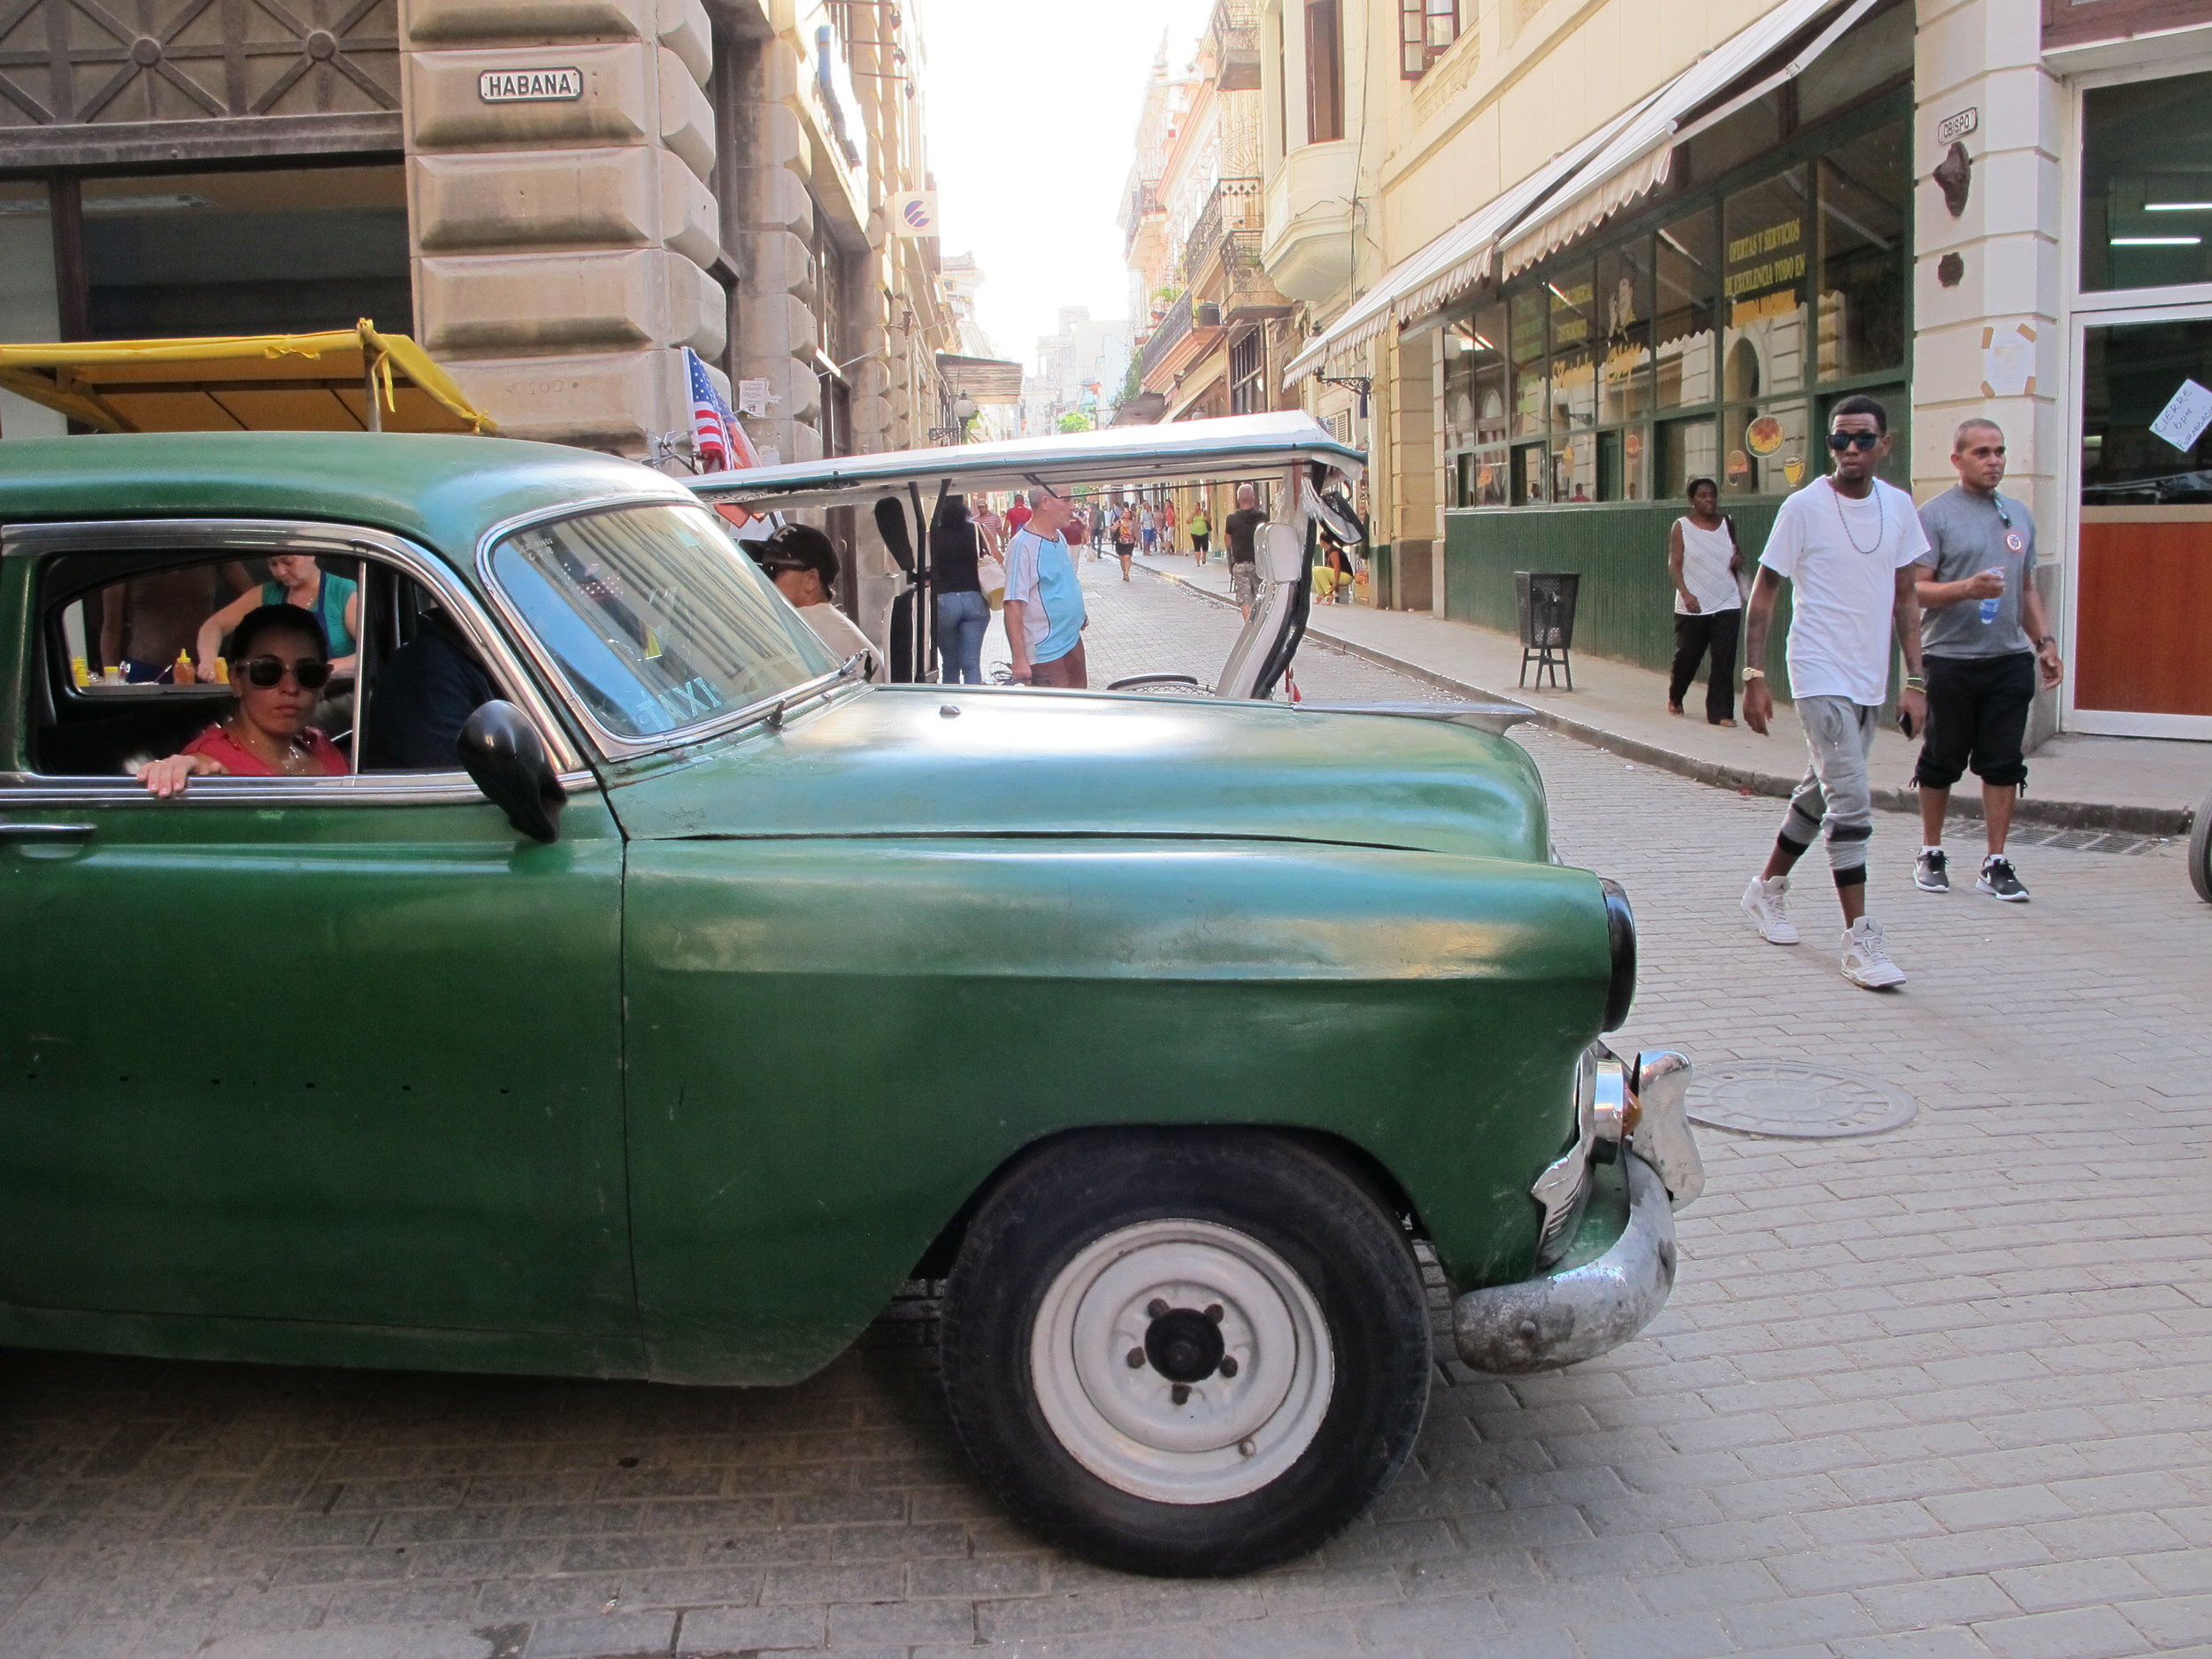 A Havana share taxi- been around a lot longer then Uber pool!